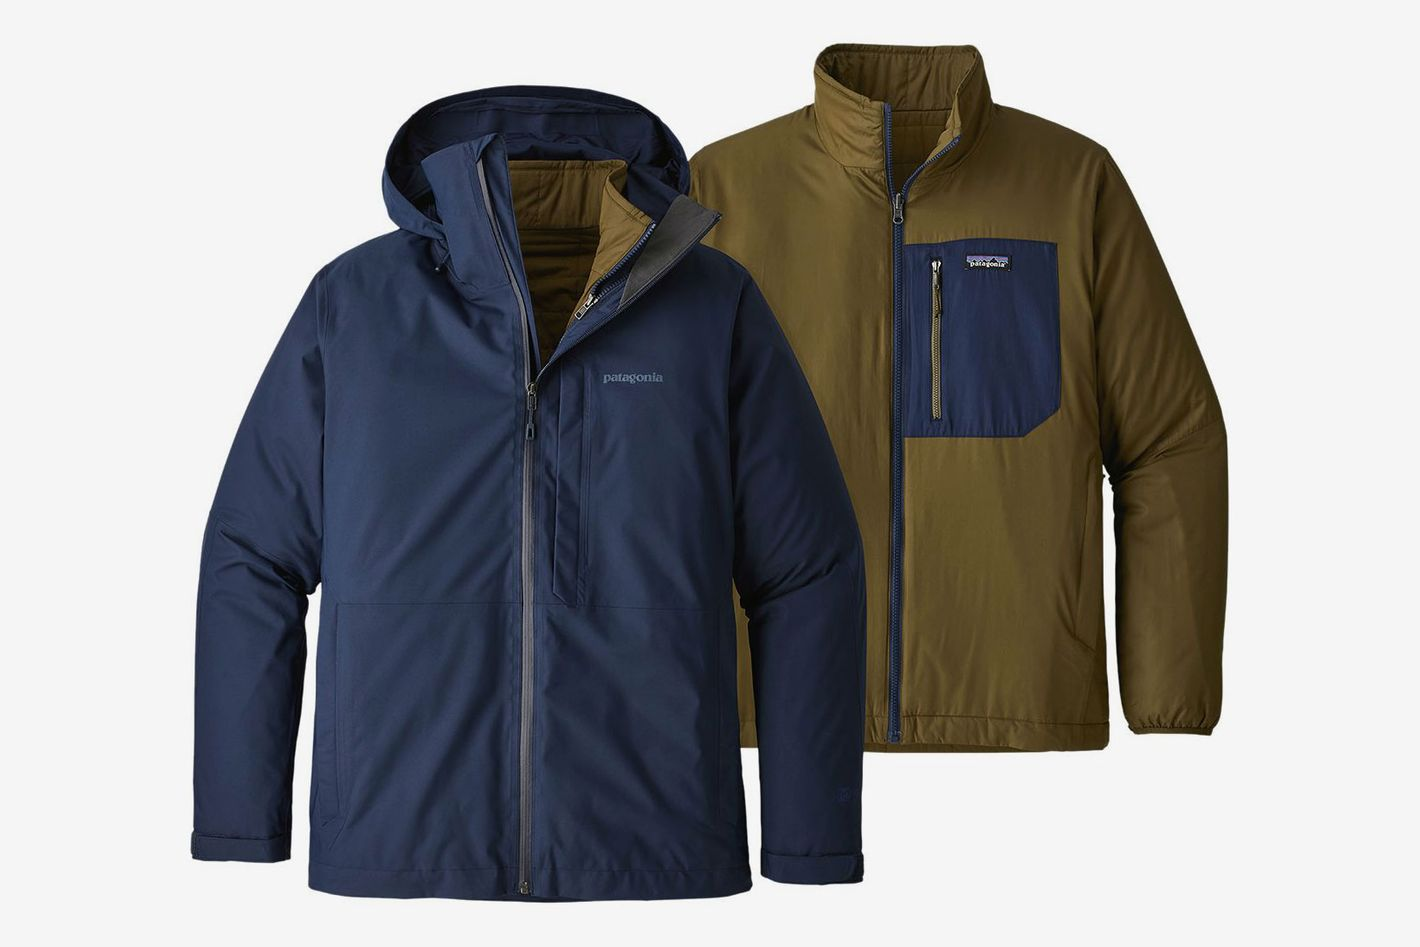 Patagonia Snowshot 3-in-1 Jacket (Men's)